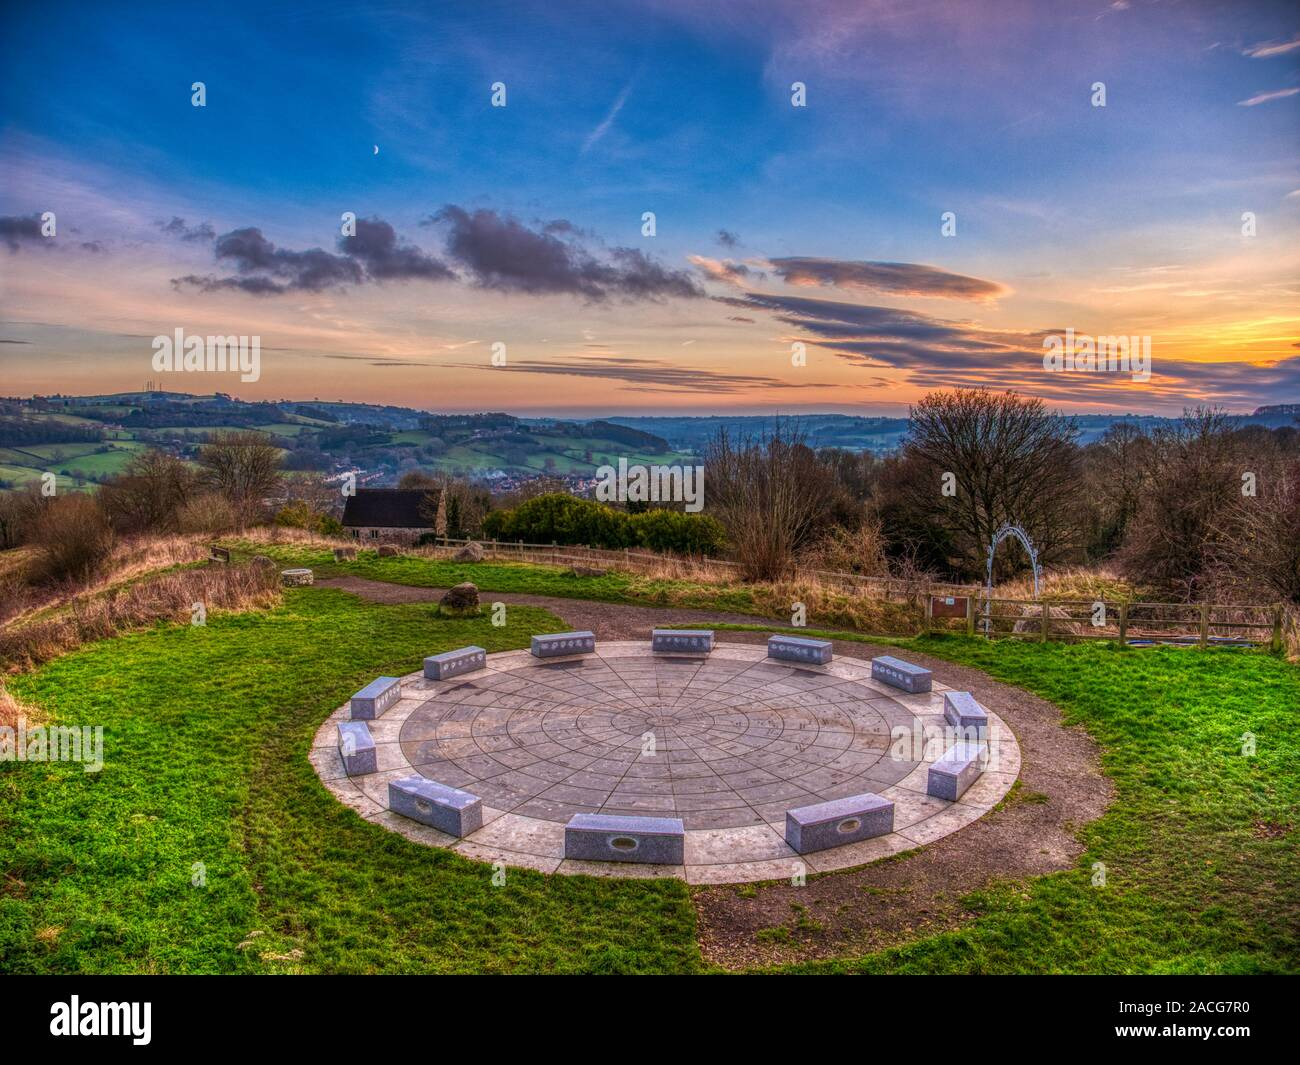 UK Weather: spectacular winter sunset over the star disc above Wirksworth in the Derbyshire Dales, Peak District National Park Stock Photo